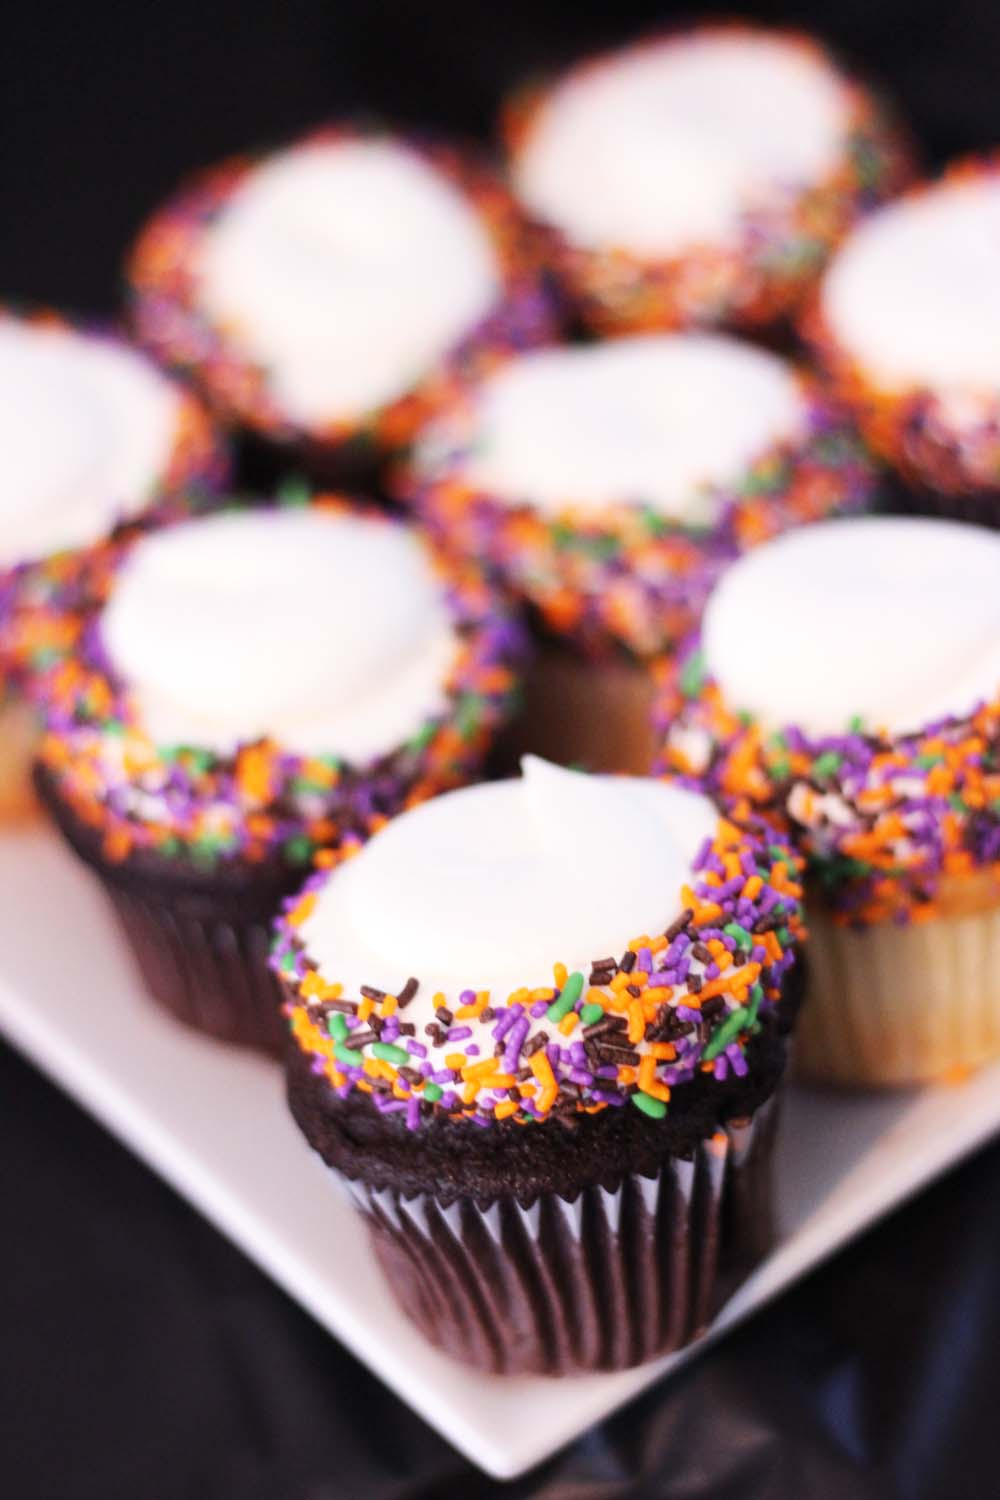 Halloween sprinkles for cupcakes at cafe pierrot in sparta nj